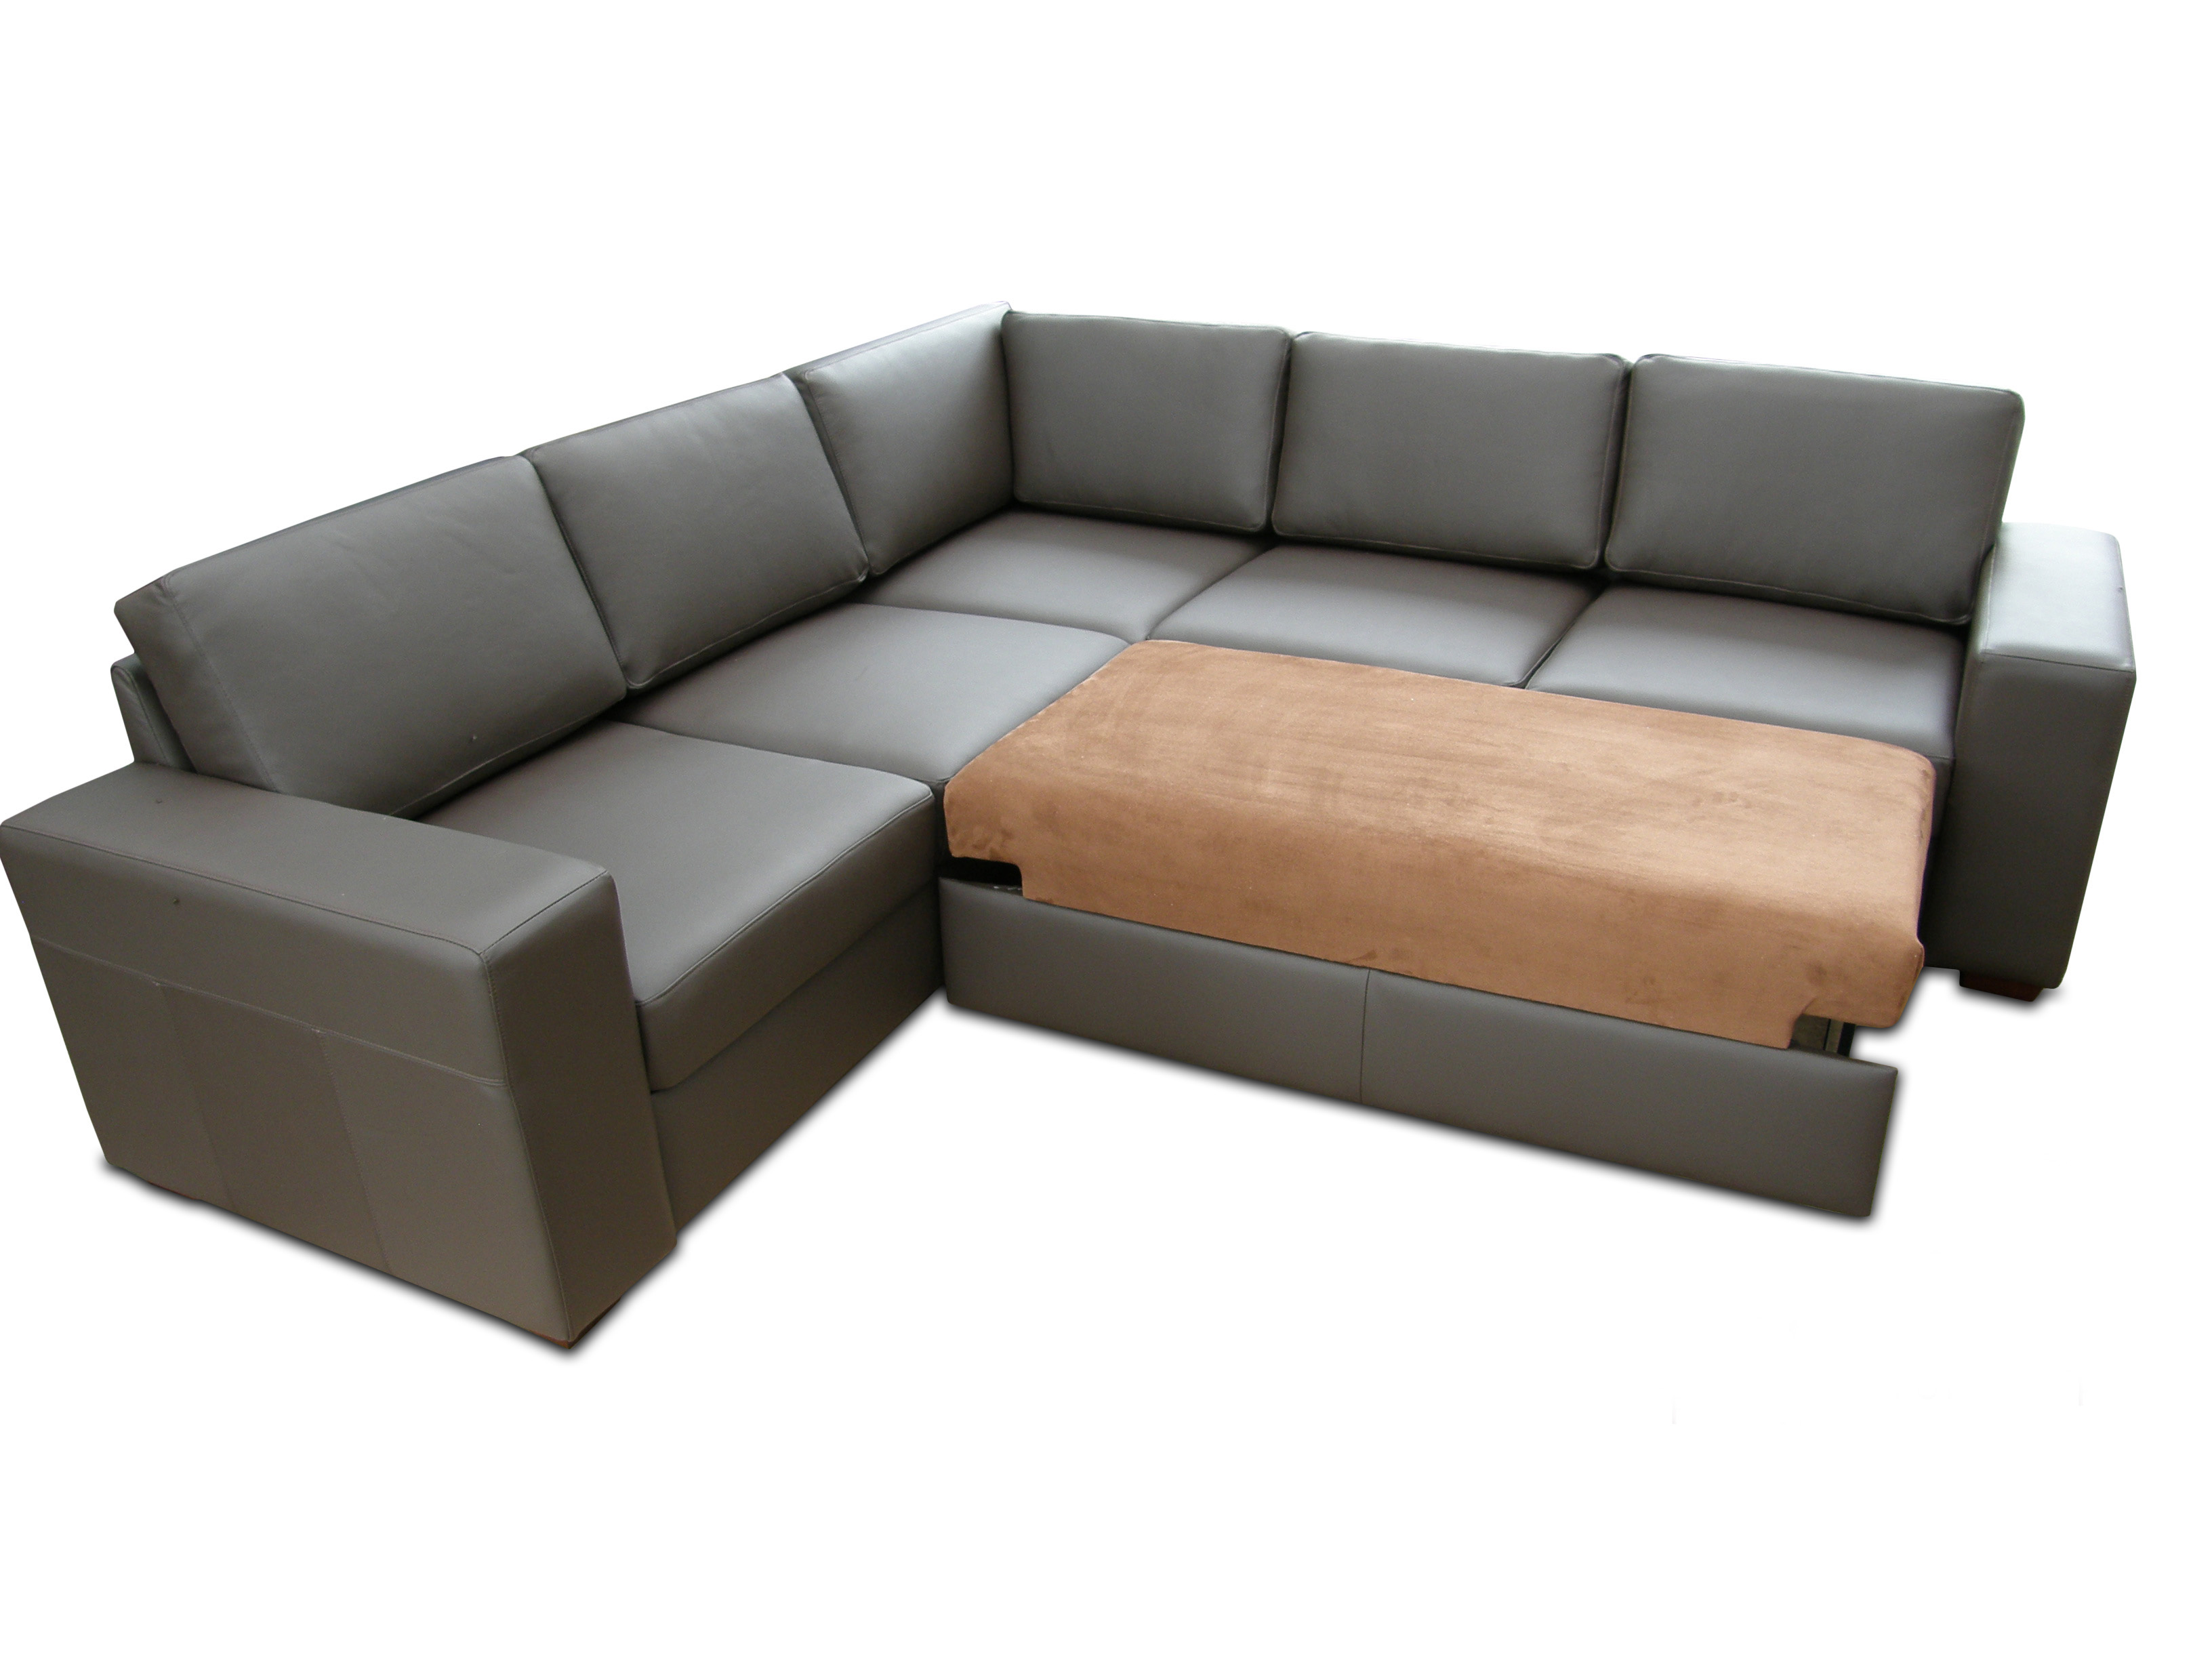 olympus black leather corner sofa bed with storage colorful slipcovers brown | baci ...